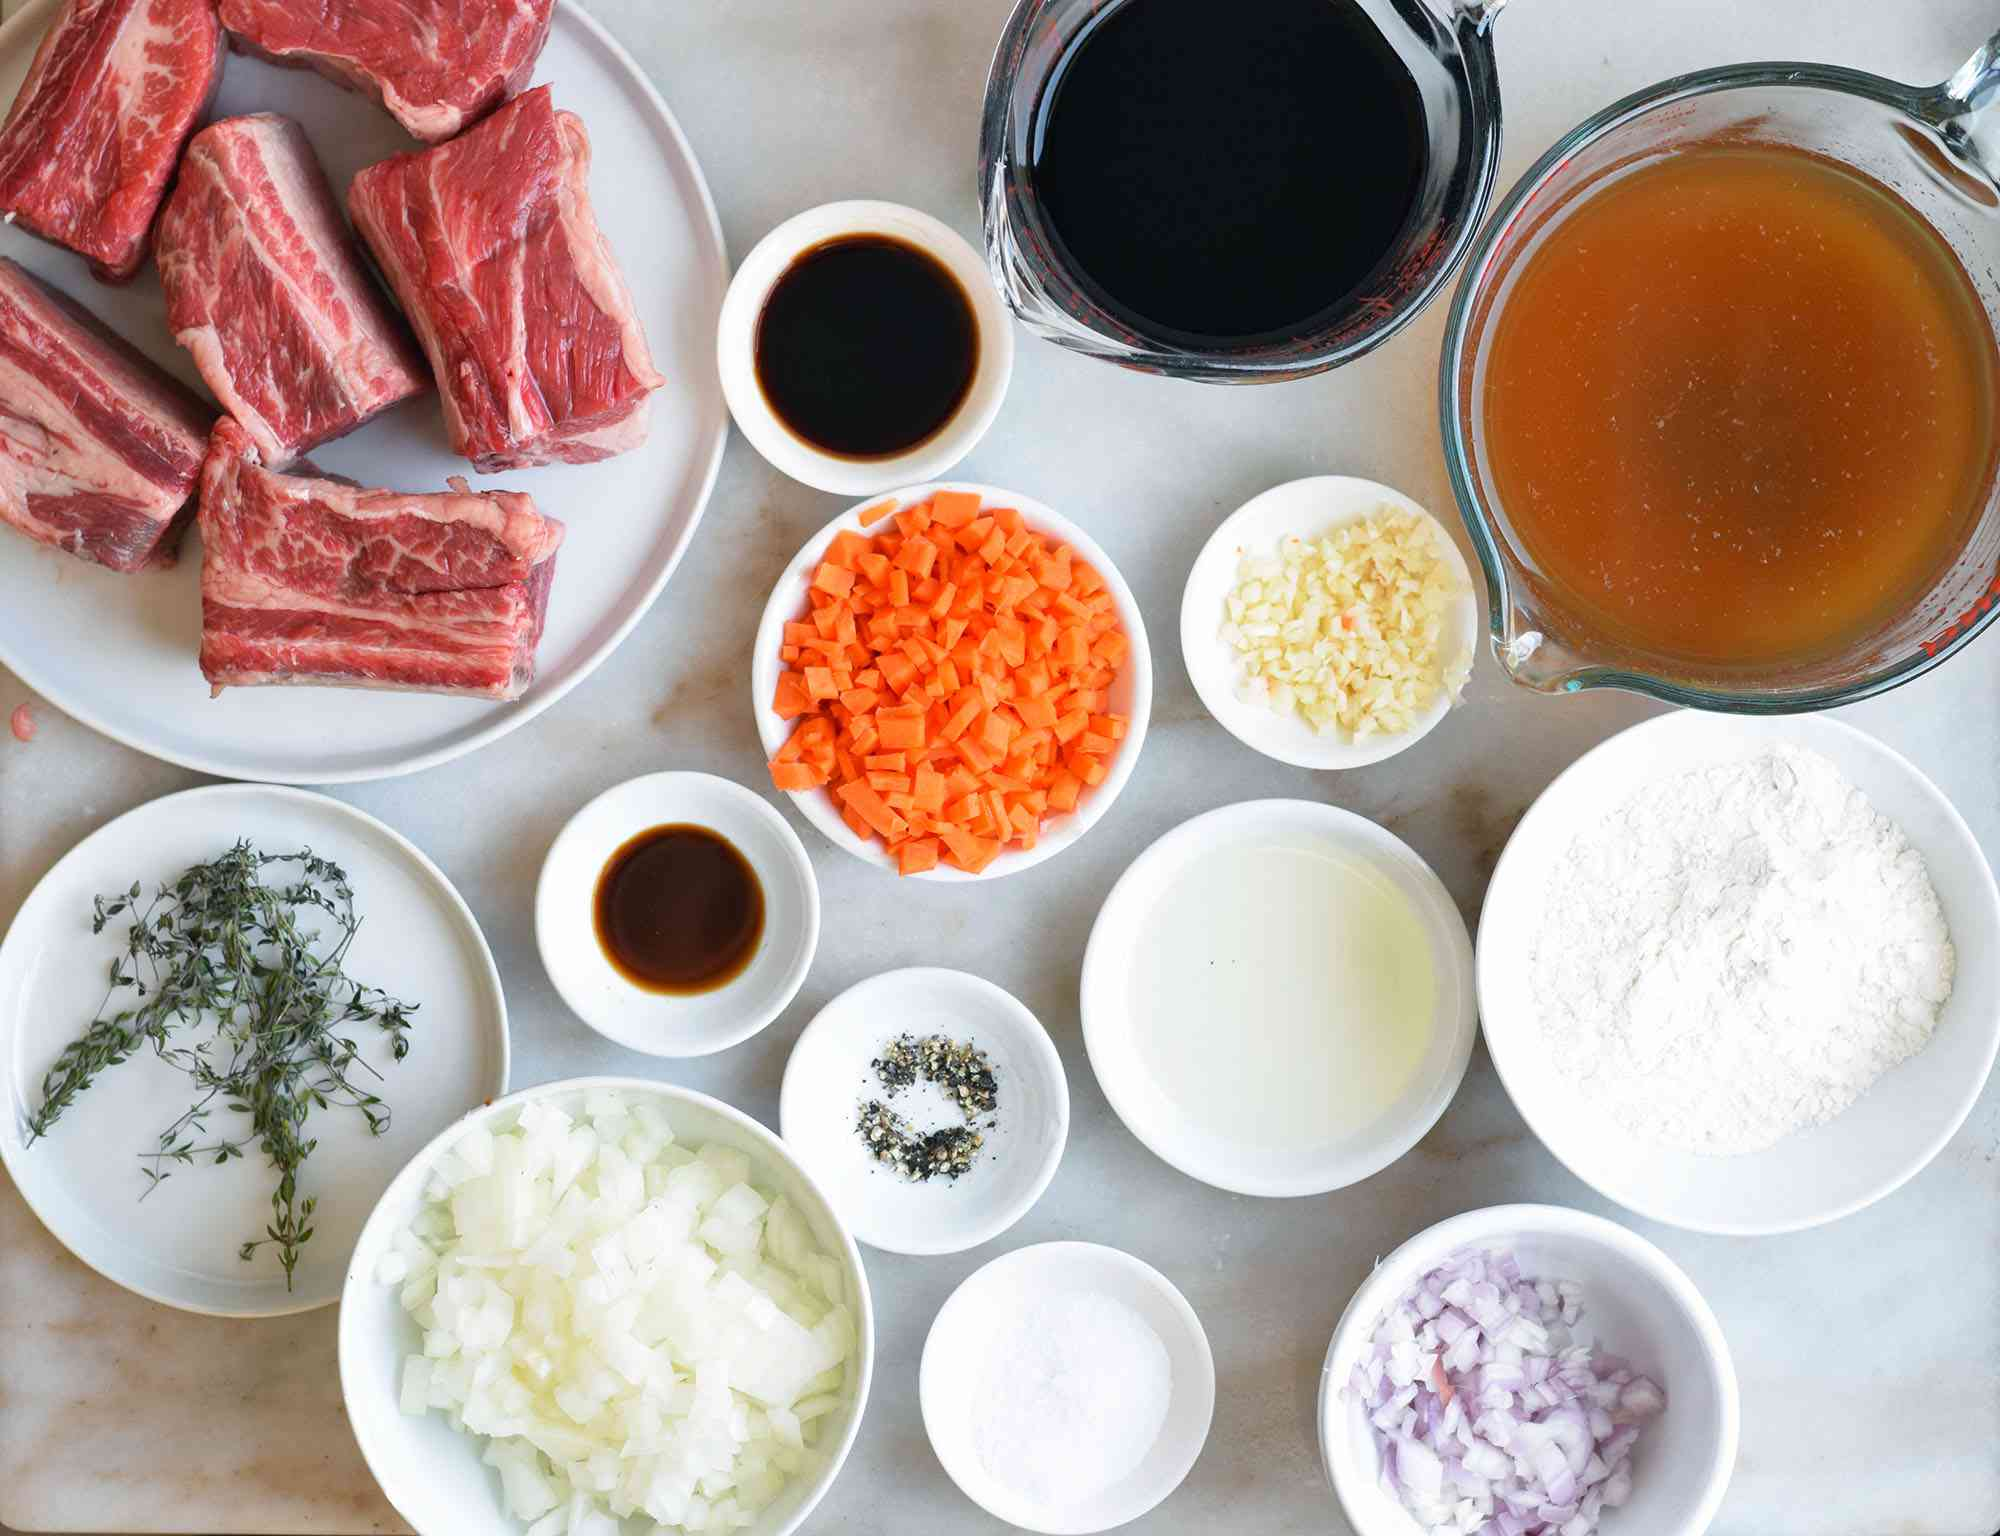 Ingredients for Instant Pot short ribs